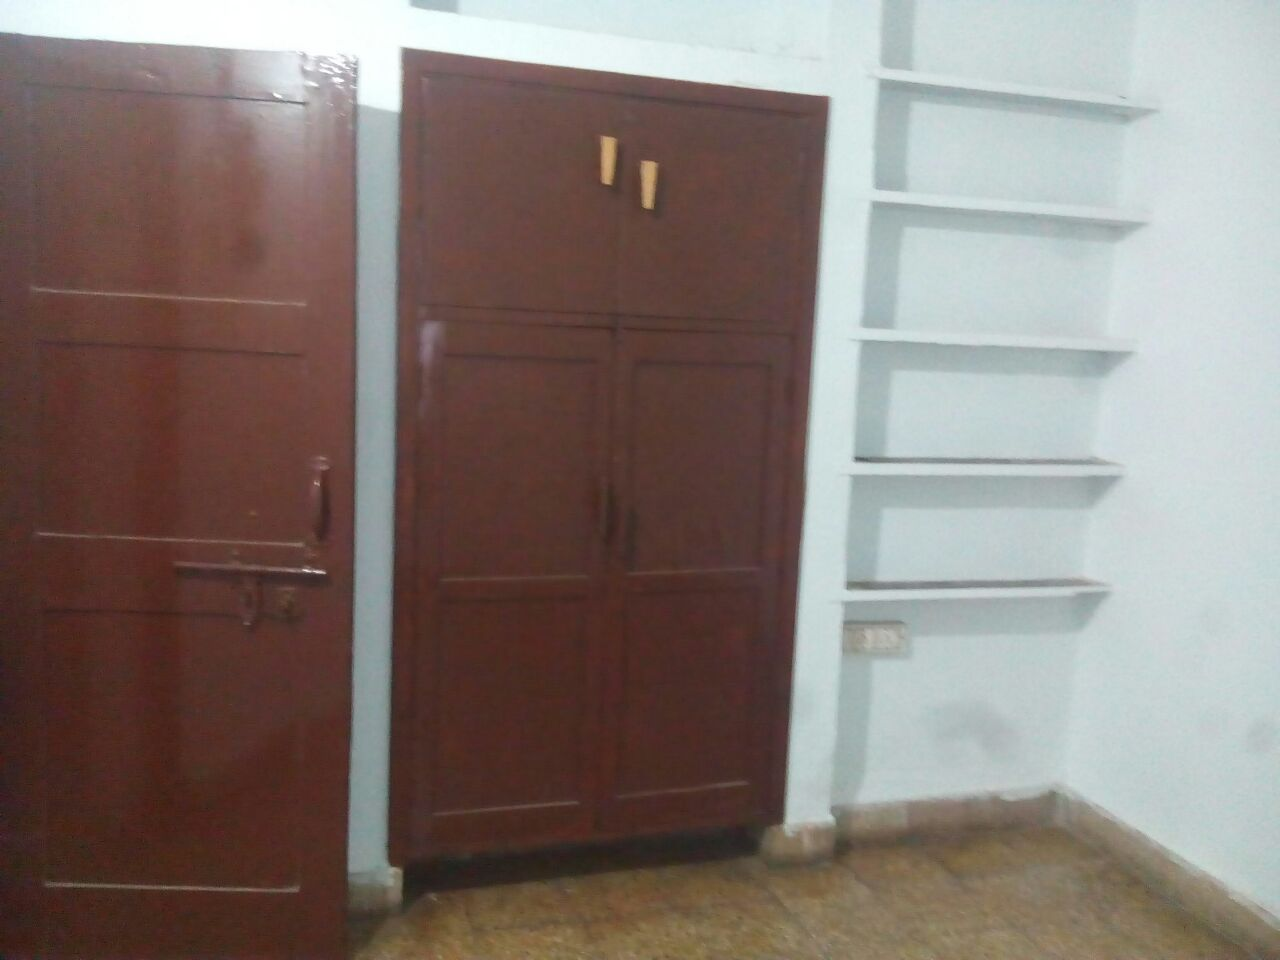 2bhk semifurnished flat for rent  at new verma layout, ambazari